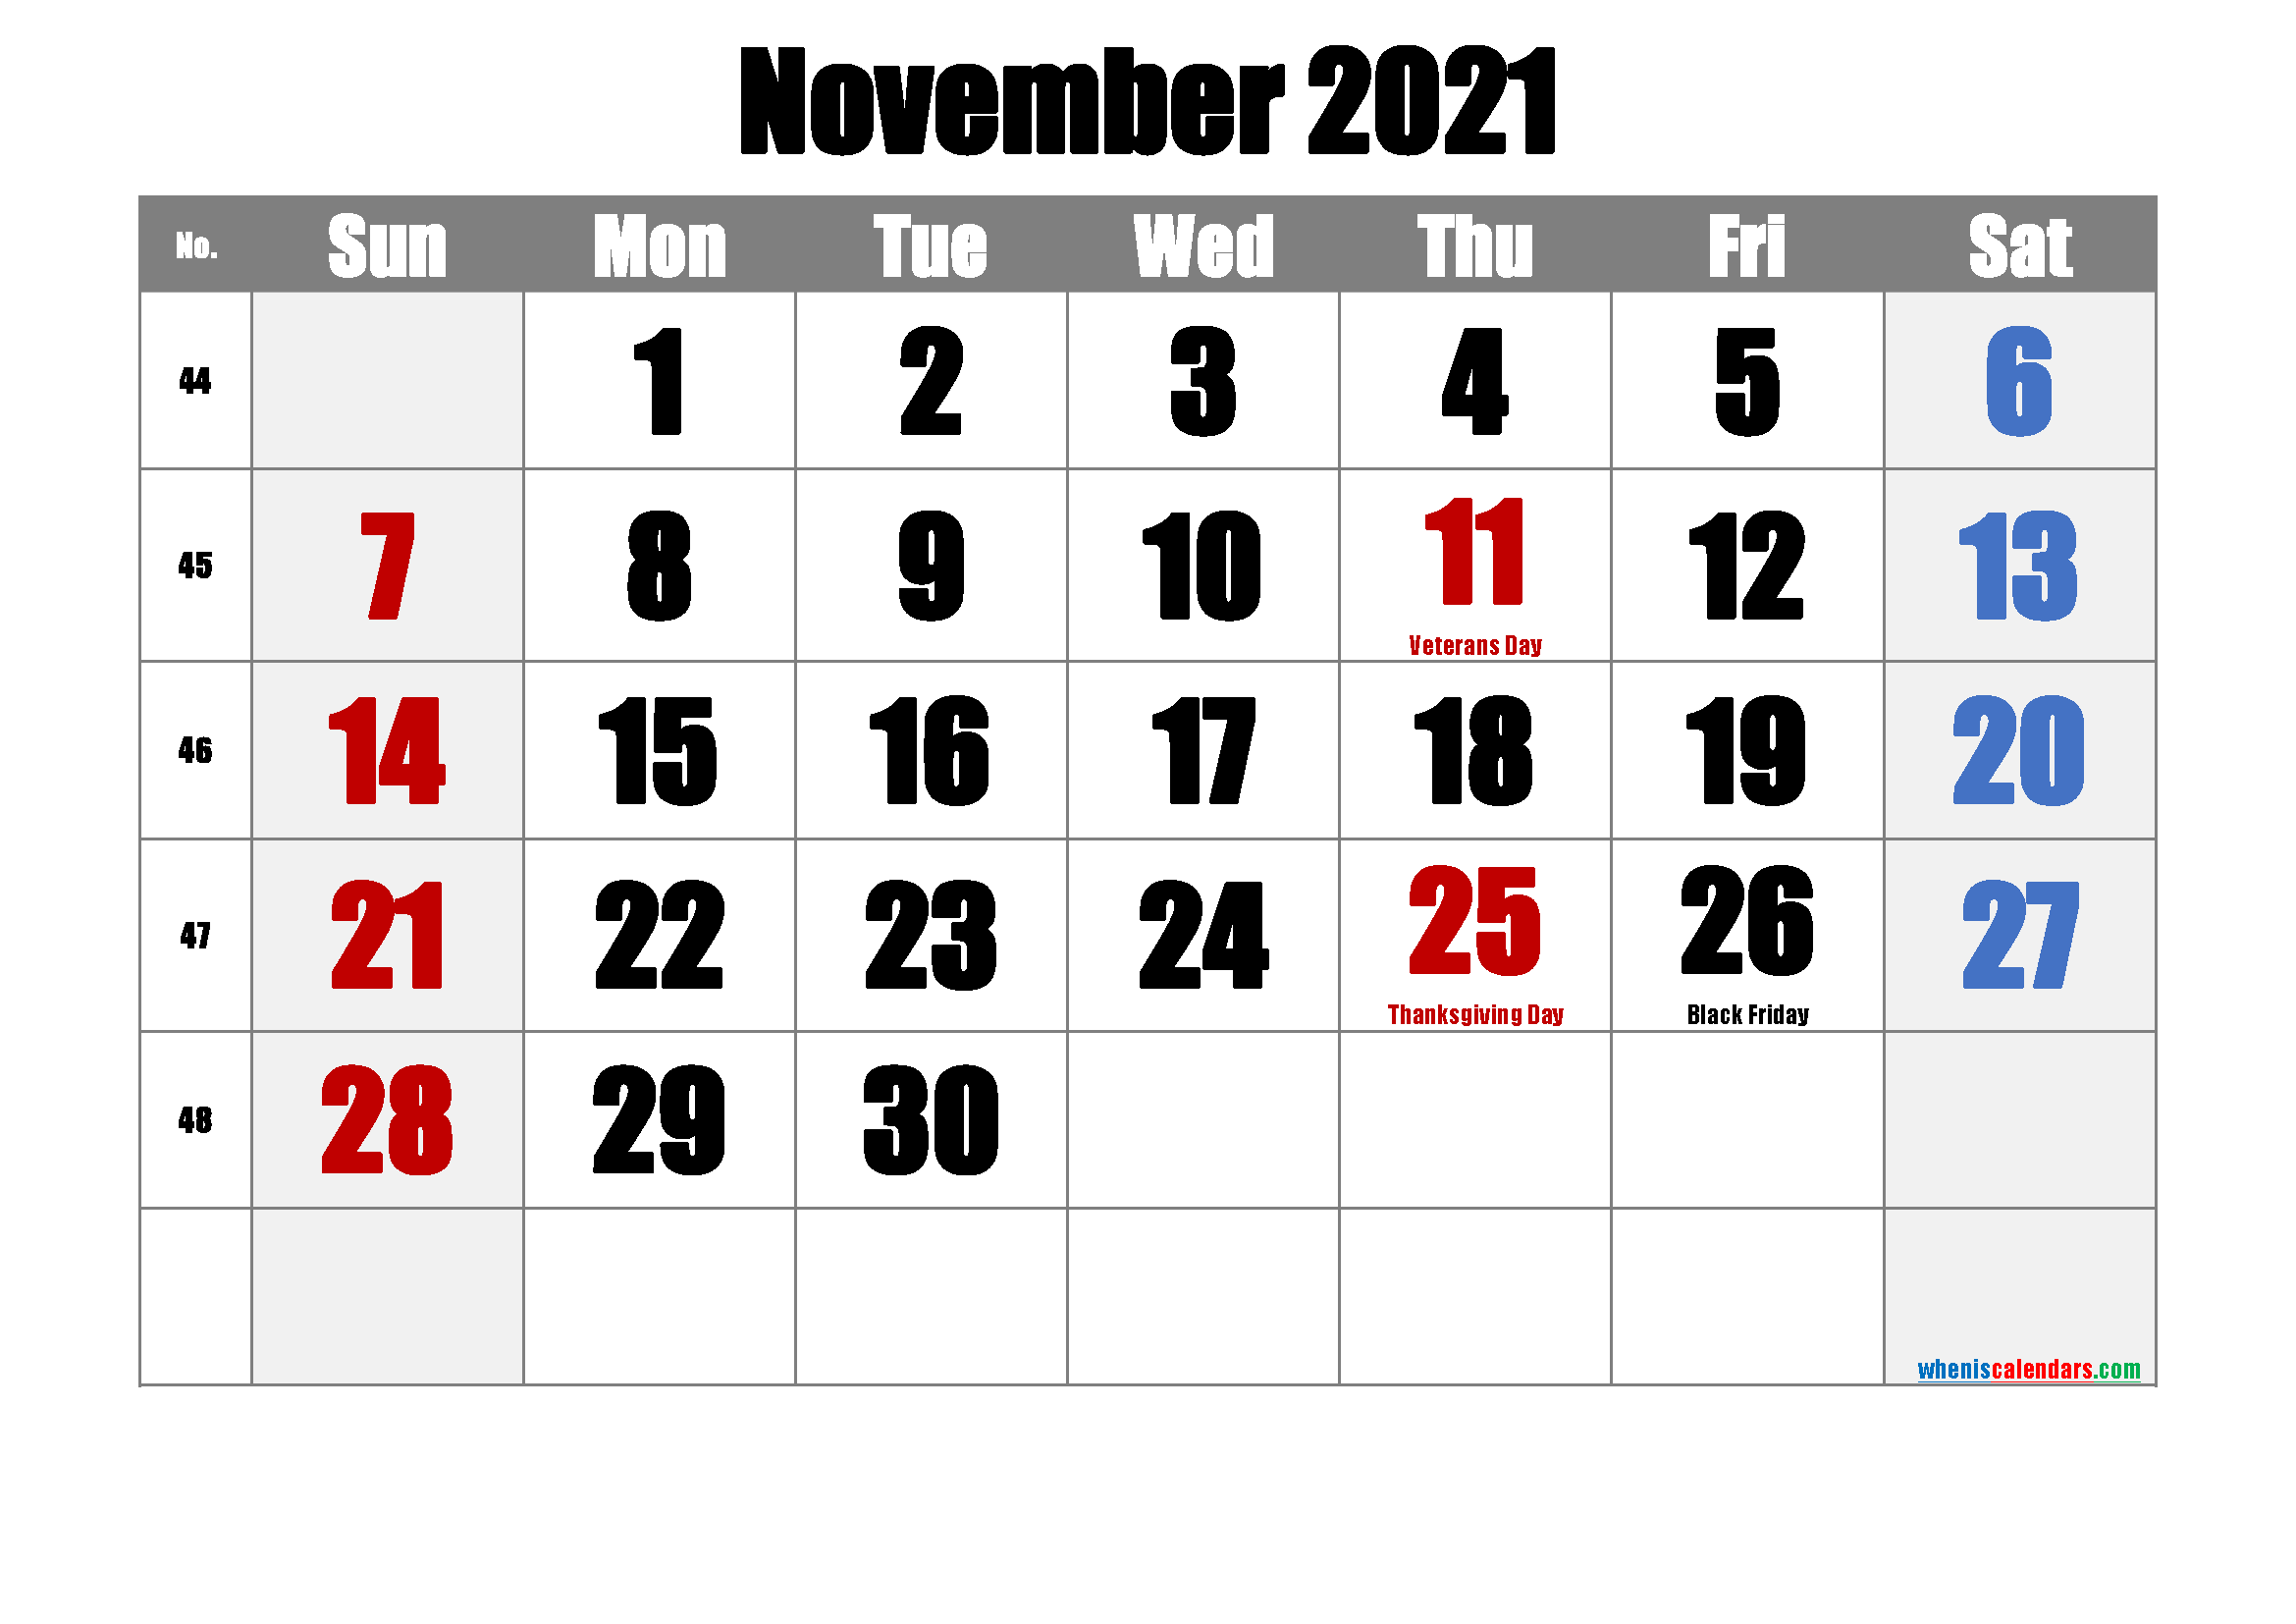 NOVEMBER 2021 Printable Calendar with Holidays